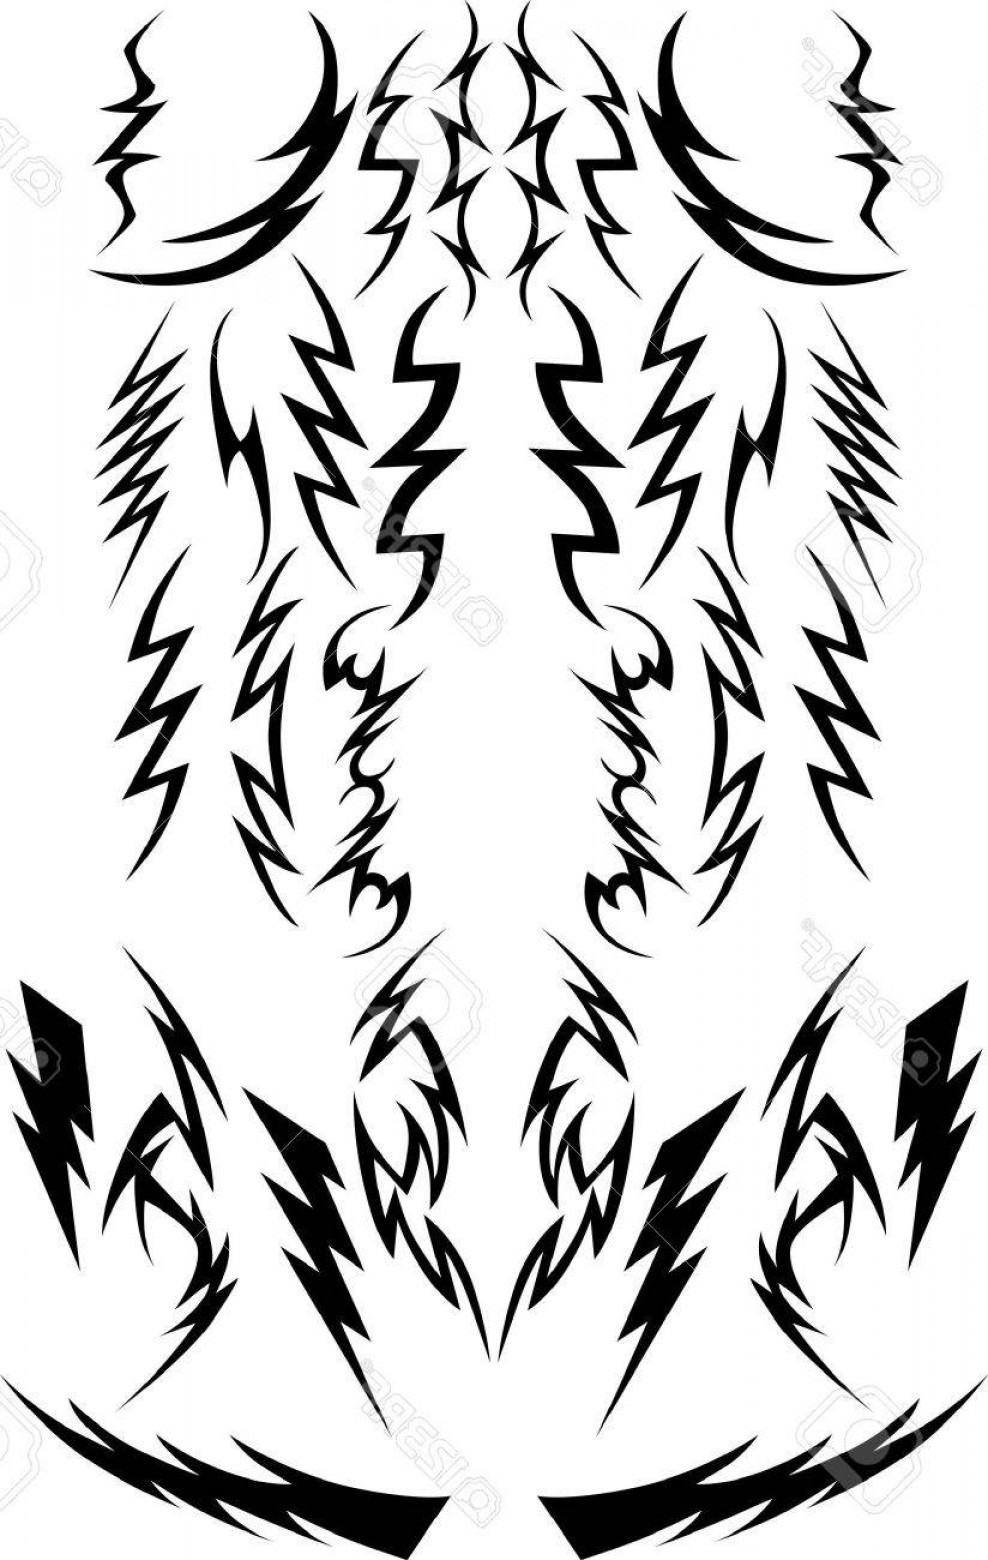 Vector Lightning Bolt Tribe: Photovector Images Of A Variety Of Lightning Bolts